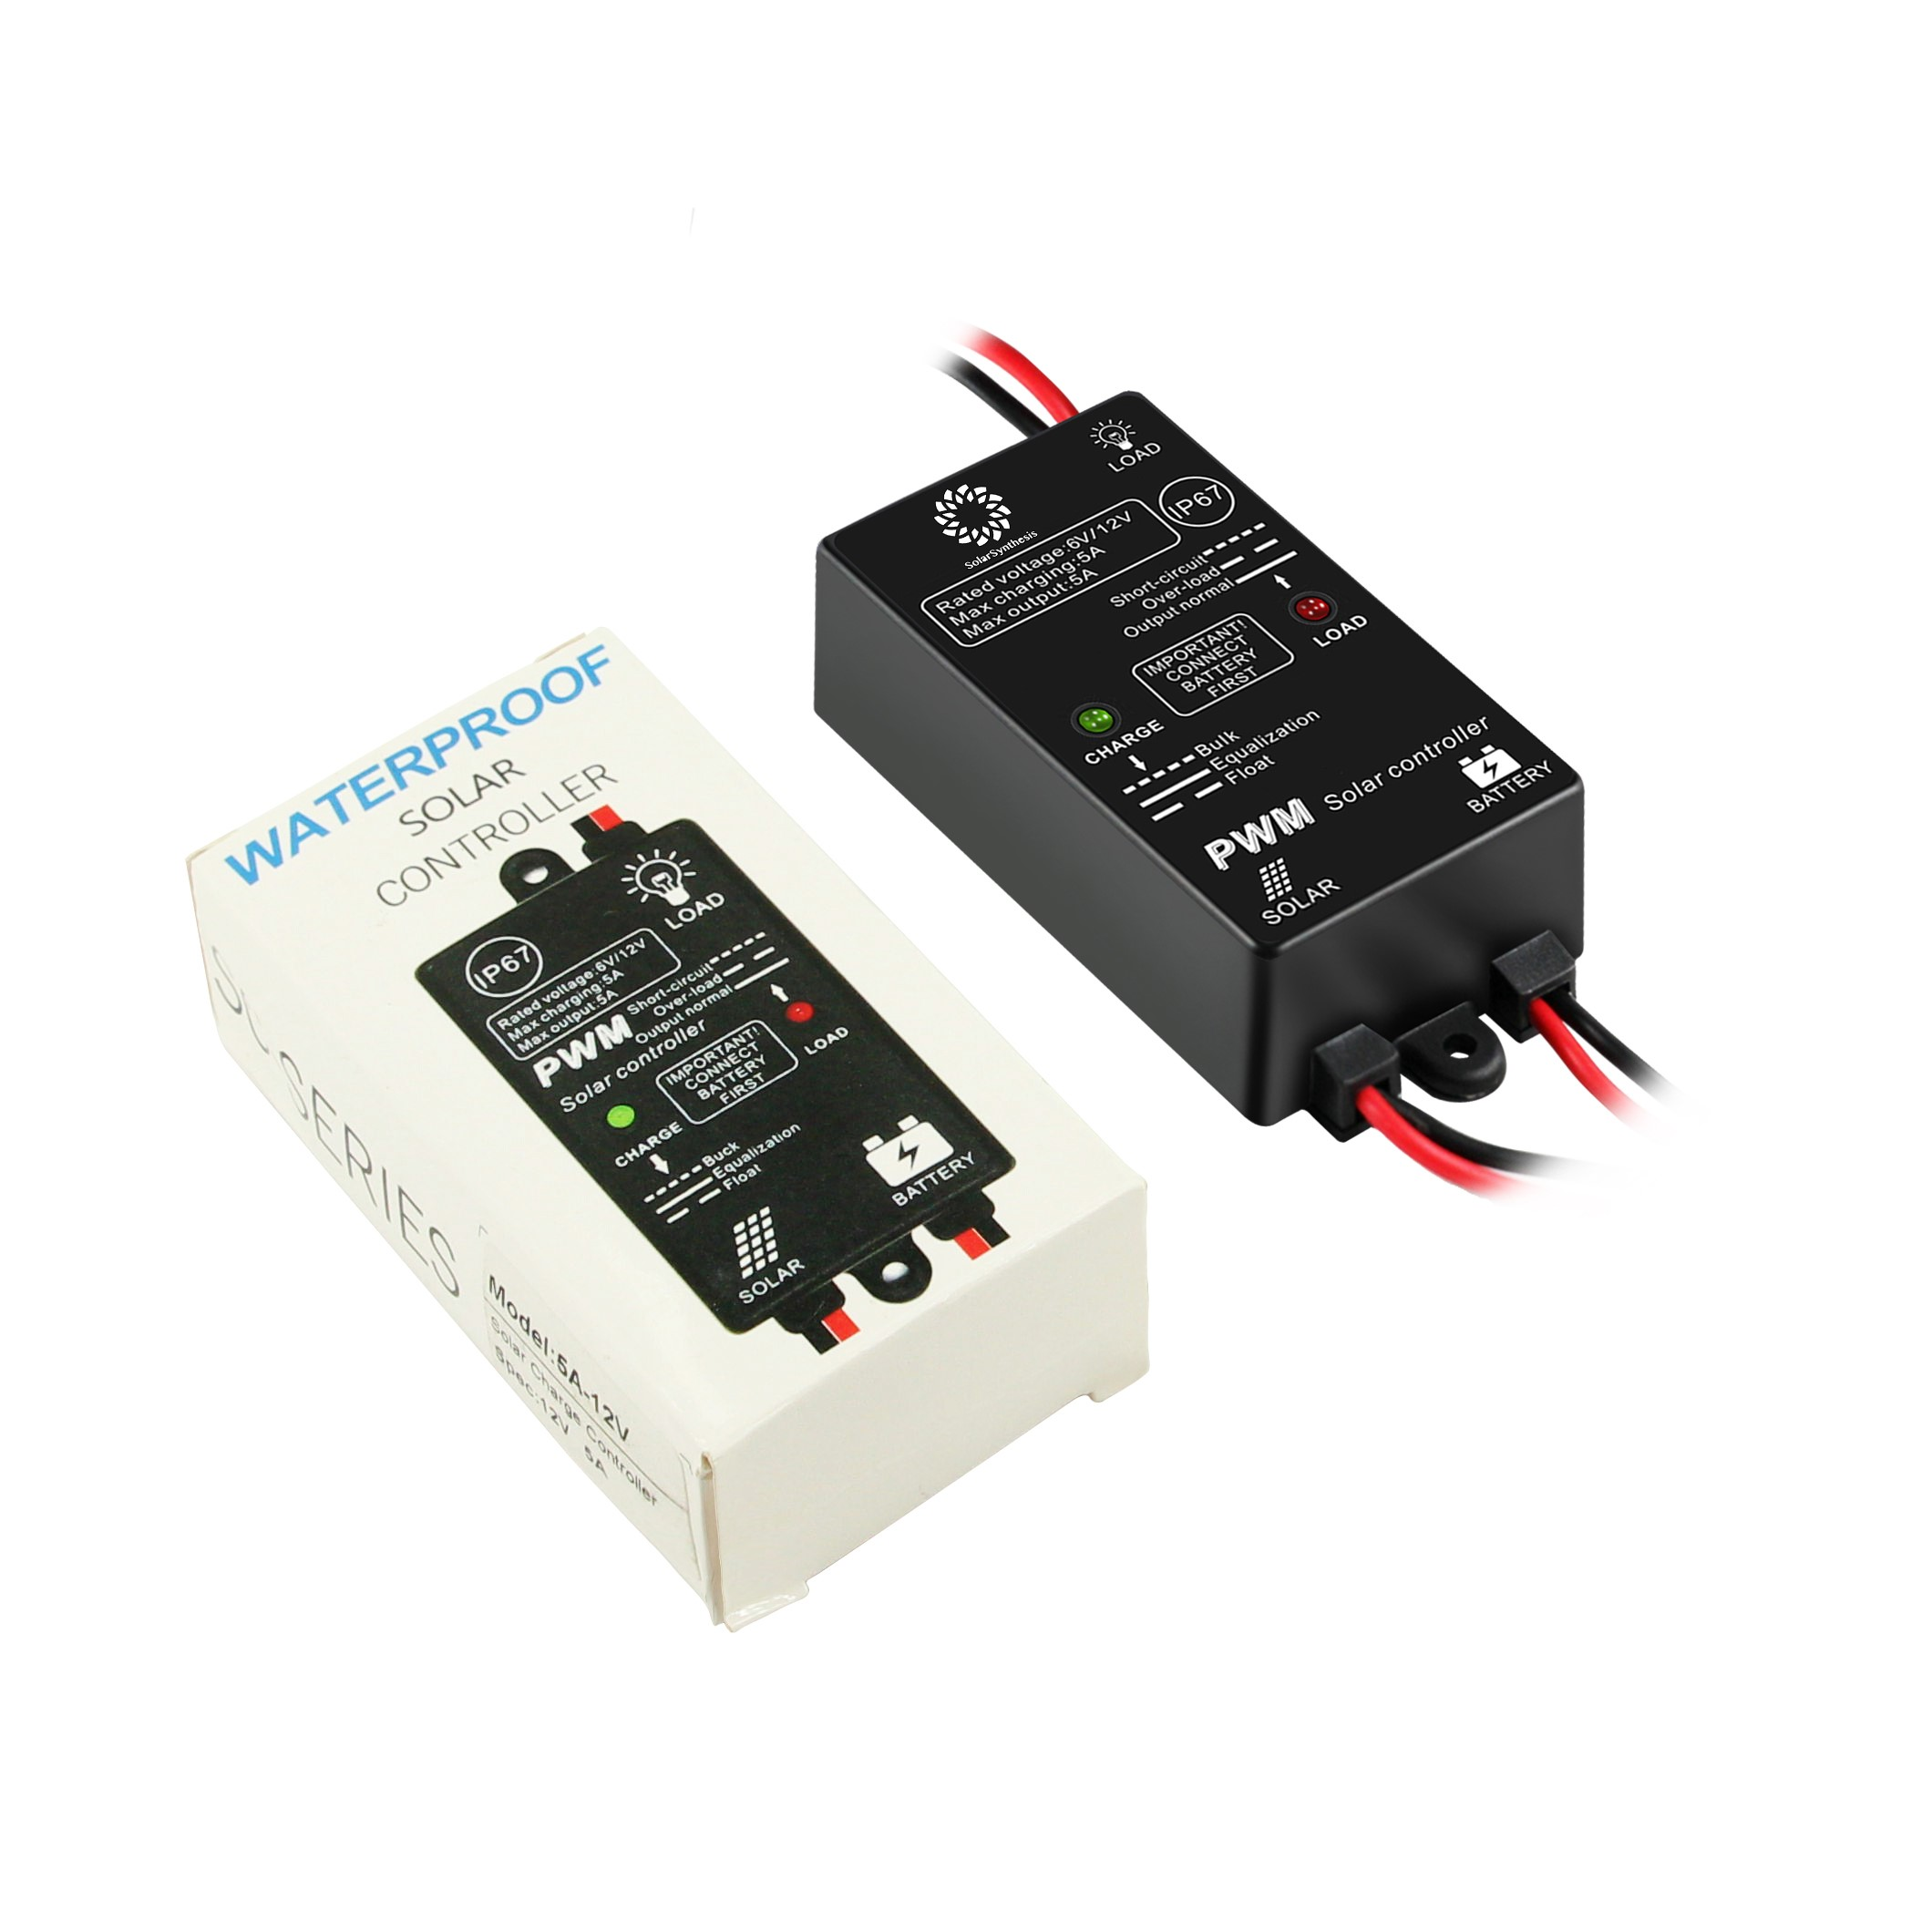 Solarsynthesis 5a 12v 6v Load On 24hours Ip67 Waterproof Solar Charge Controller Circuit For Lead Acid Battery Charing And Discharging Control